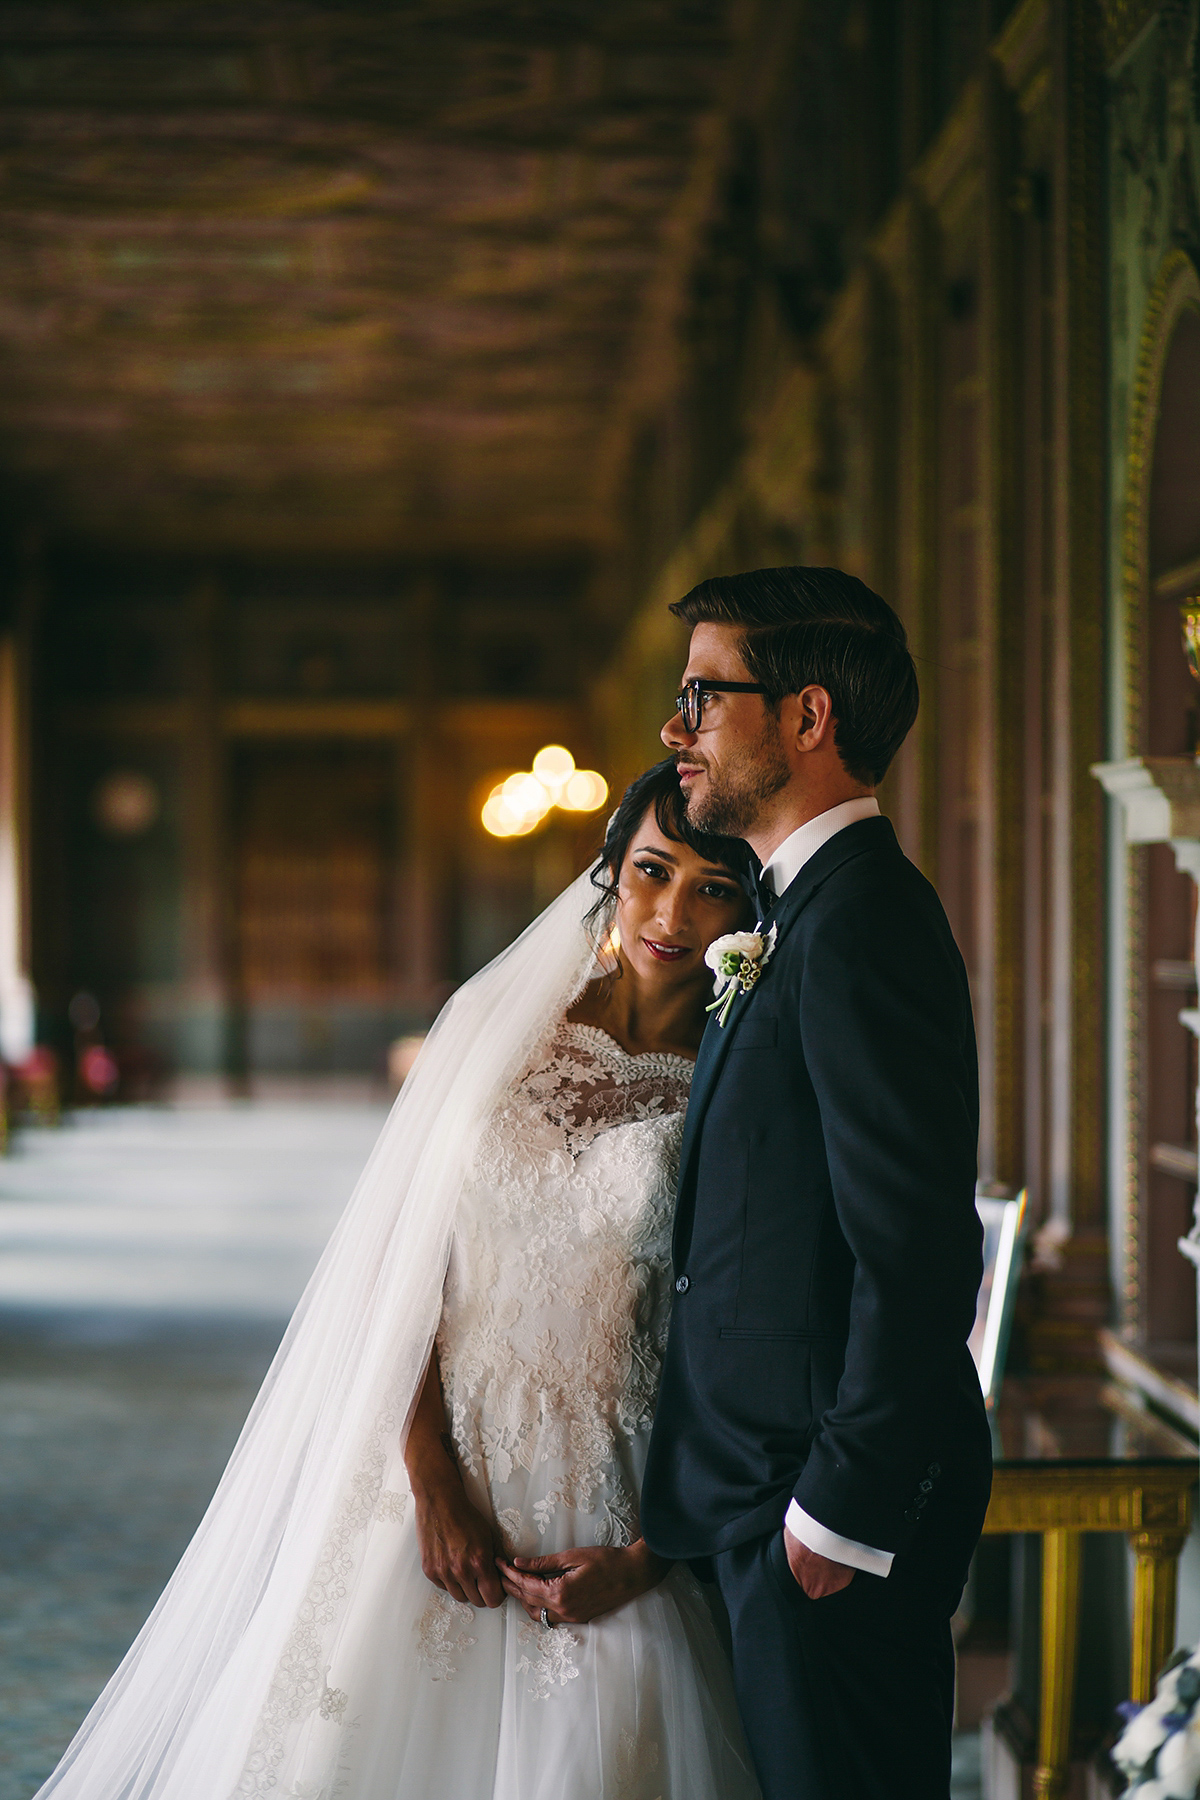 Pronovias Elegance for a Glamorous Multicultural Wedding at Syon Park in London (Weddings )